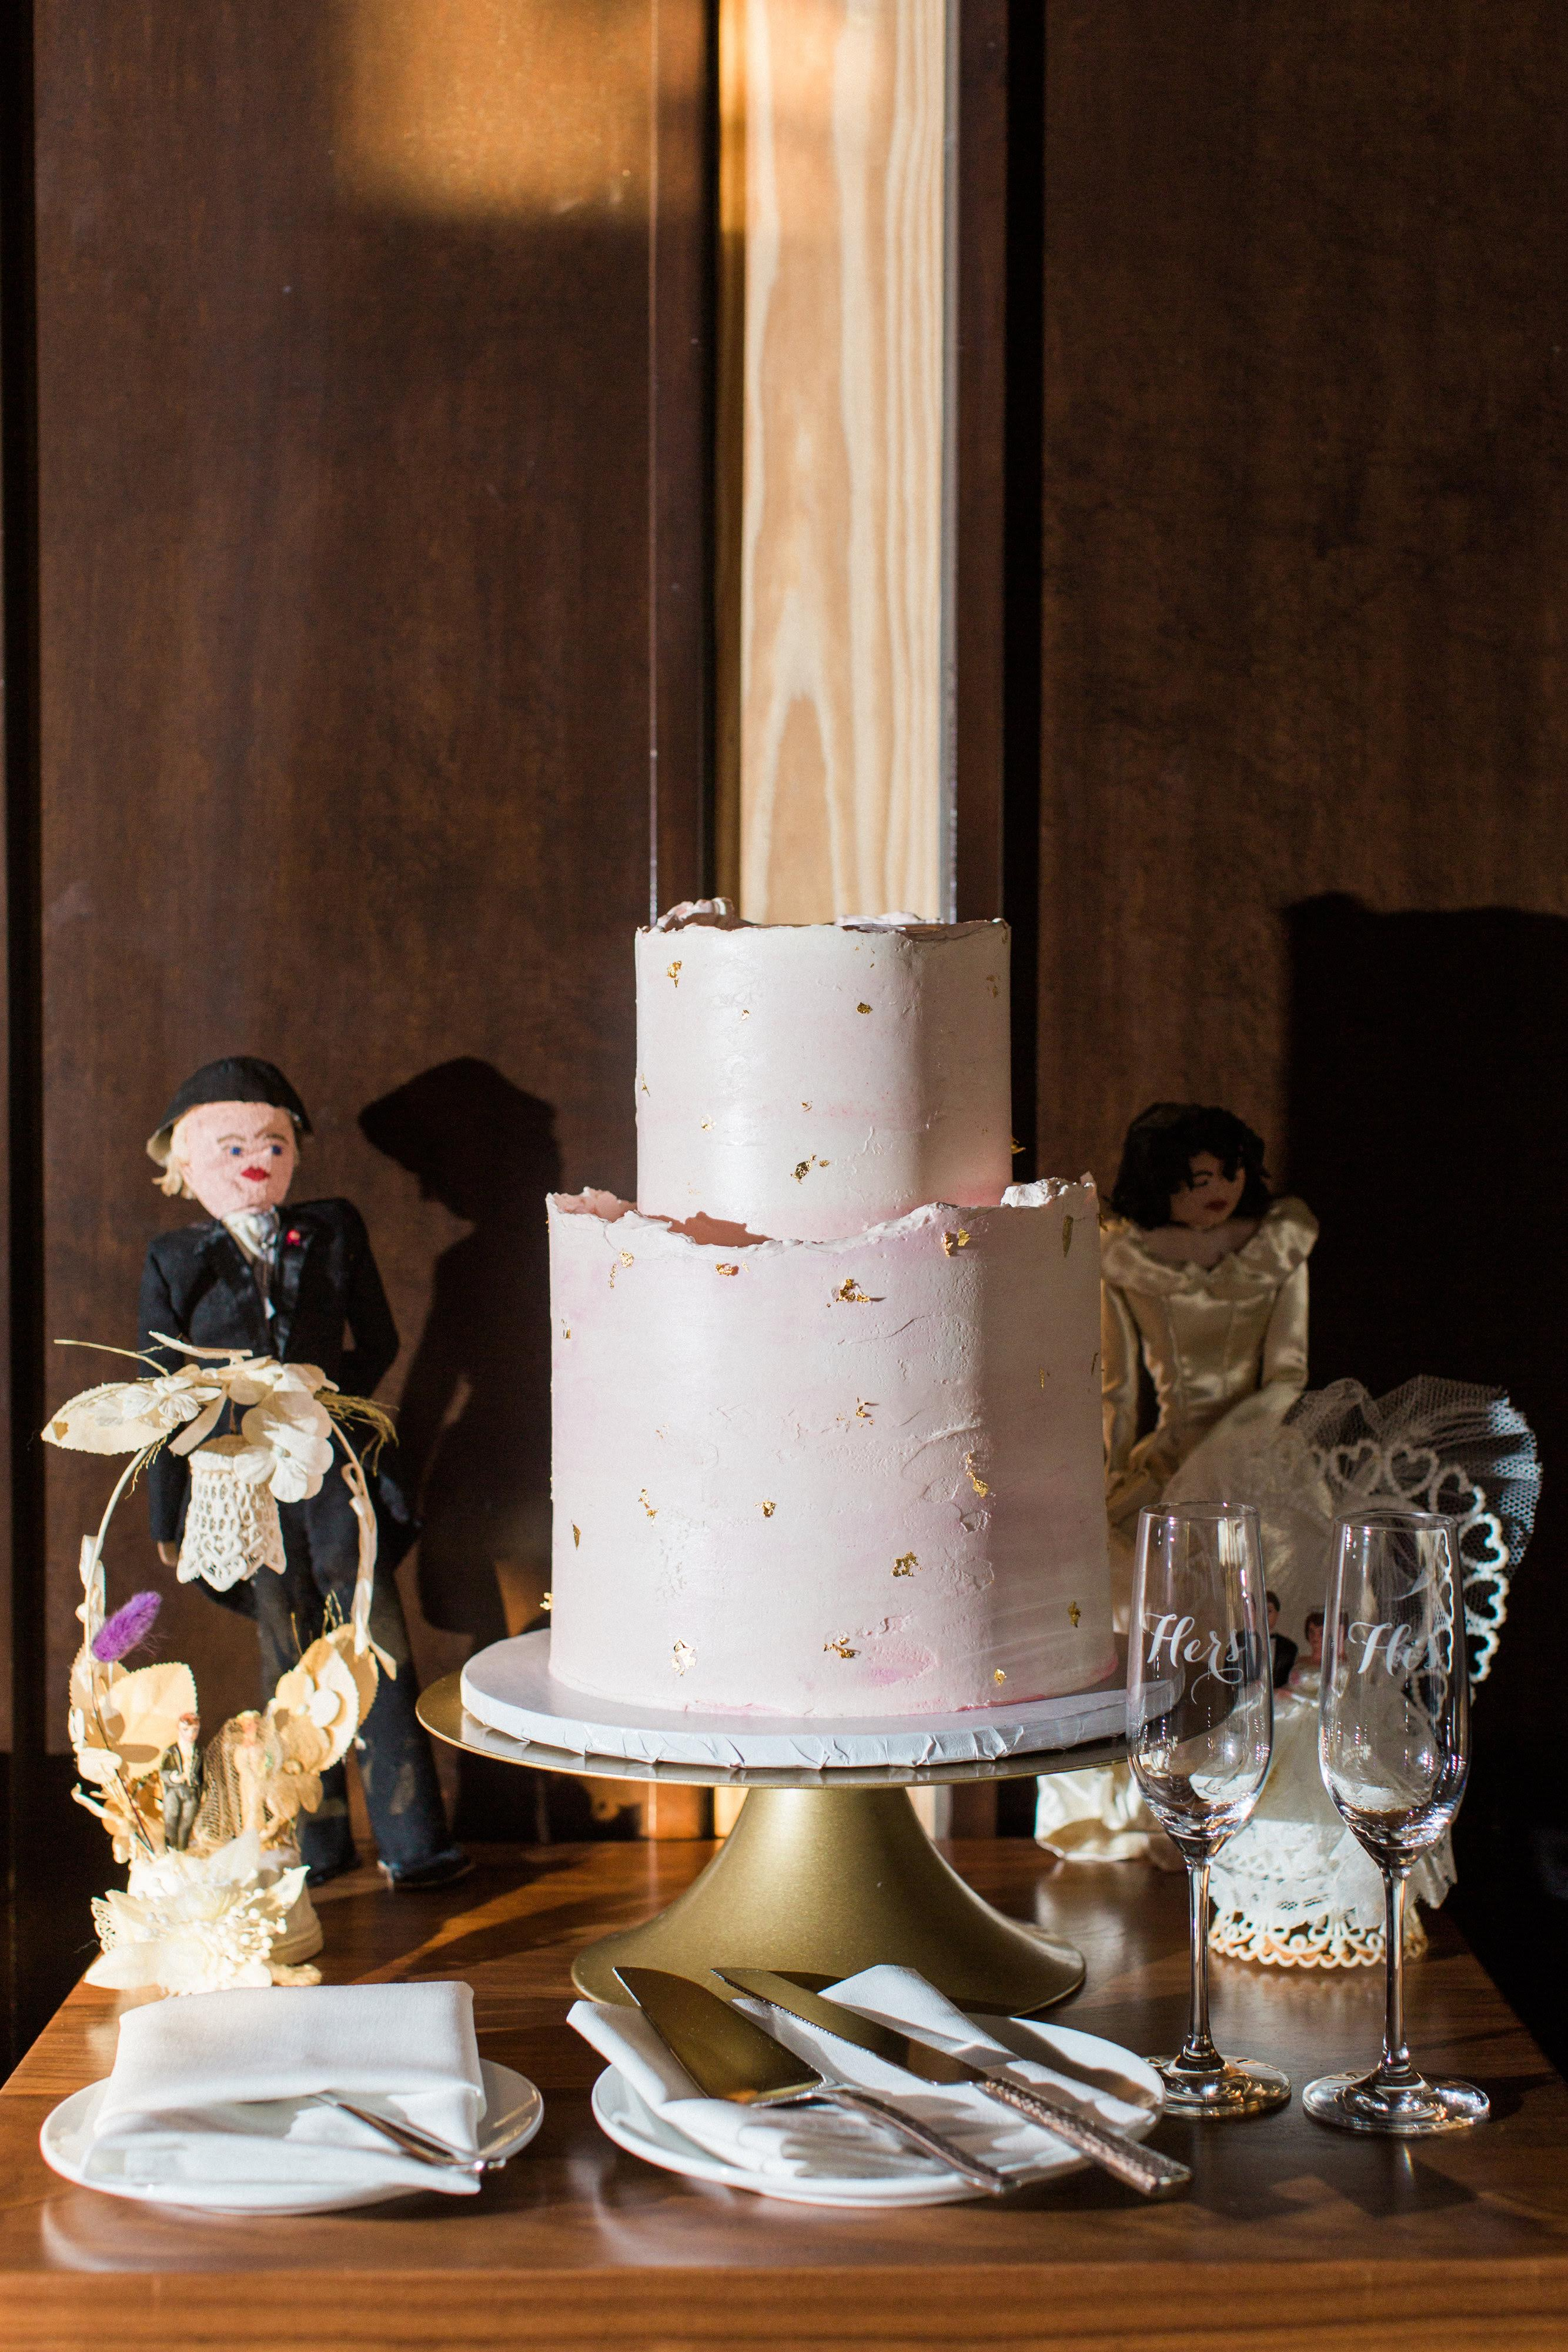 Cake Baker: Buttercream Bakery (Image: Birds of a Feather Photography/{ }http://birdsofafeatherphotos.com){ }